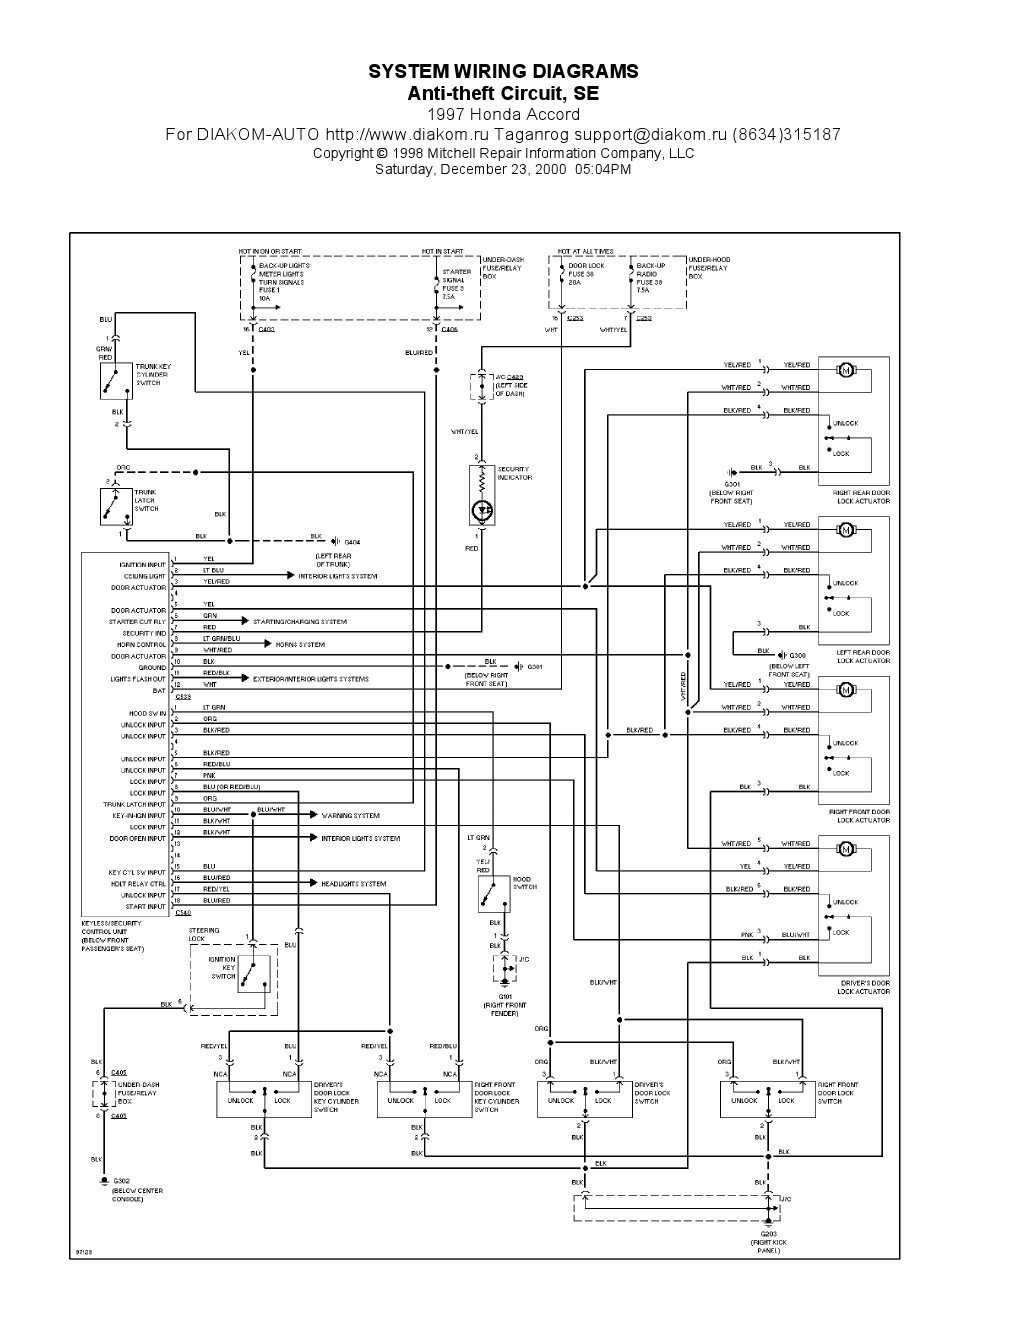 hight resolution of 1994 honda accord horn wiring diagram wiring diagrams ac disconnect box wiring diagram 1994 honda accord